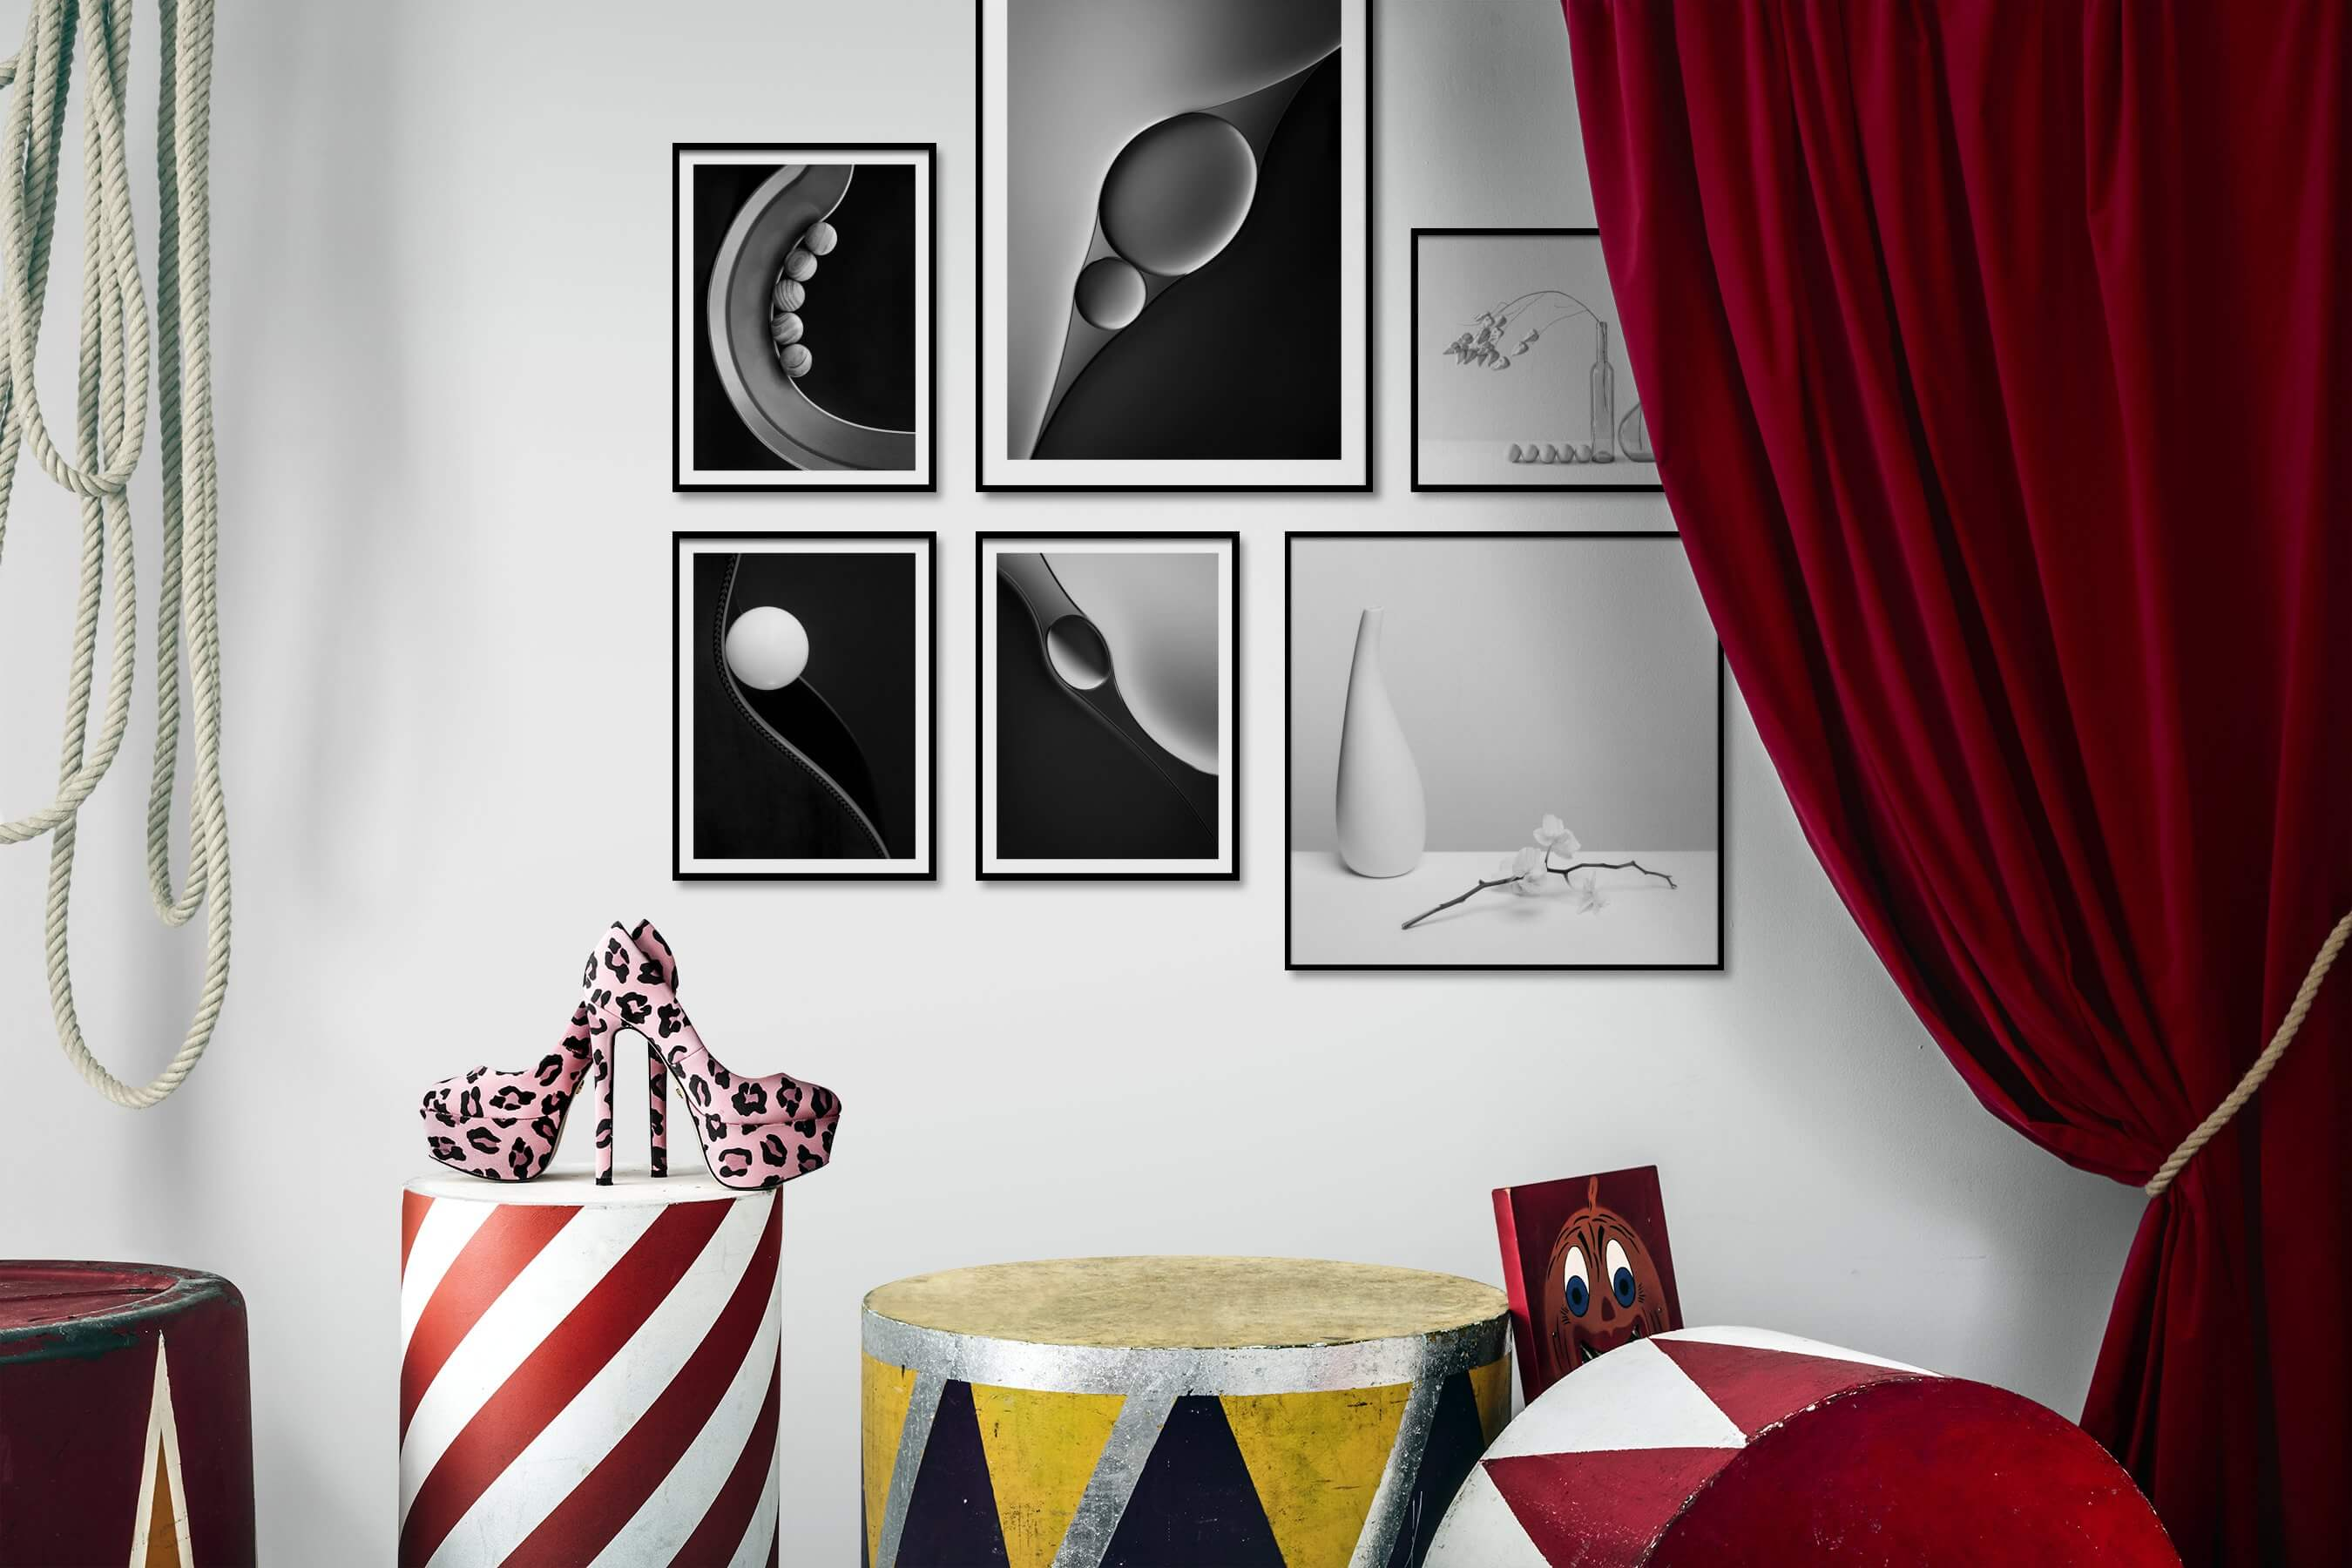 Gallery wall idea with six framed pictures arranged on a wall depicting Black & White, For the Minimalist, Bright Tones, and Flowers & Plants